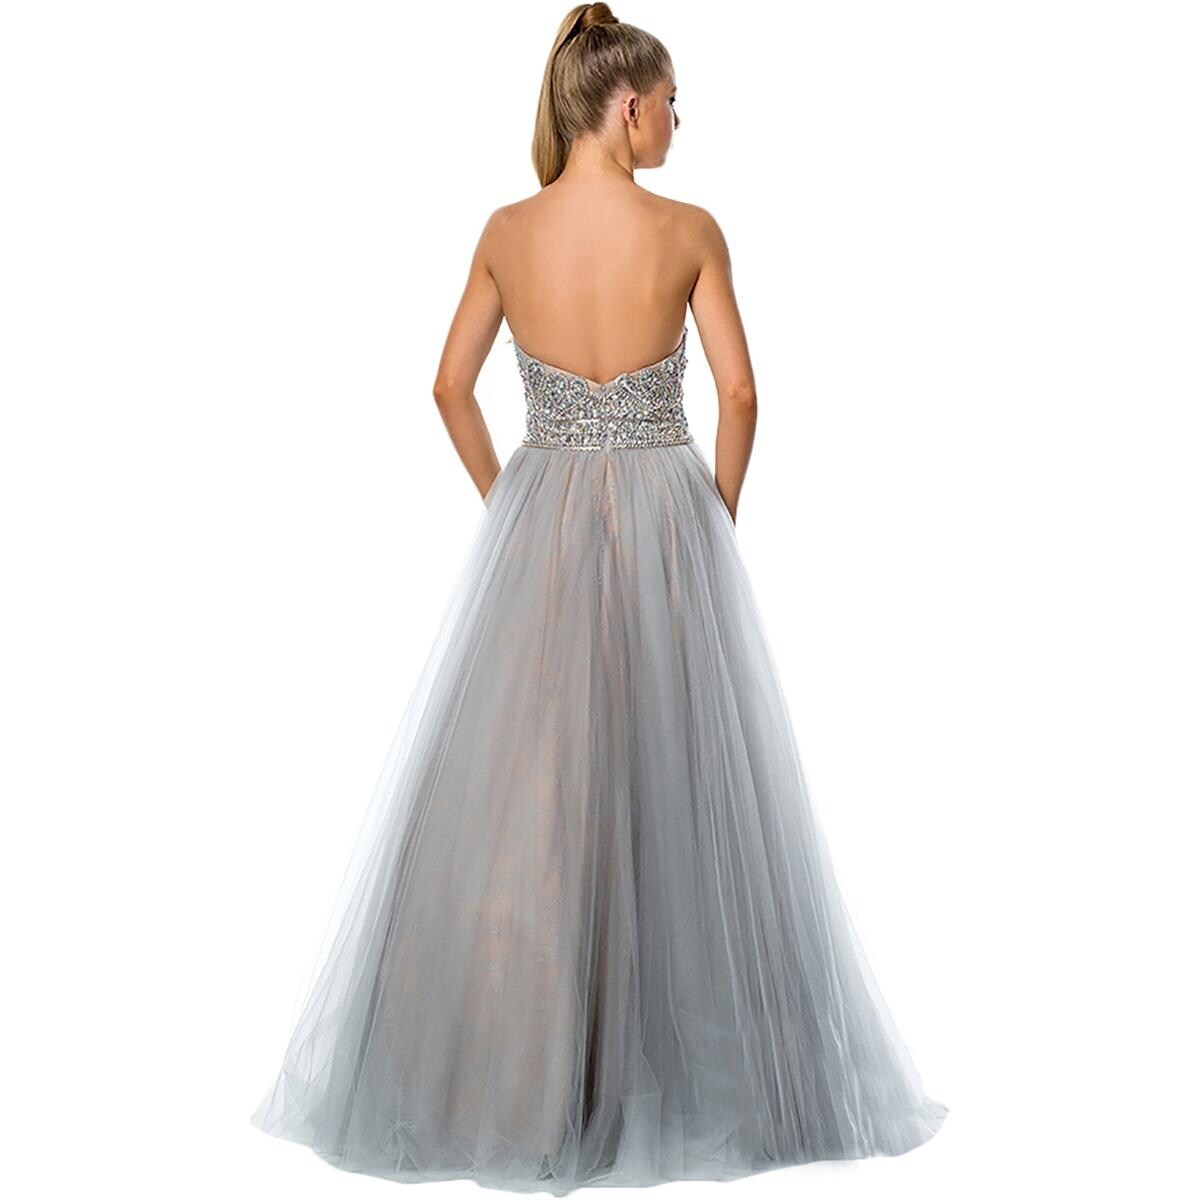 669c0be6432 Shop Terani Couture Illusion Strapless Formal Dress - Free Shipping Today -  Overstock - 20697011